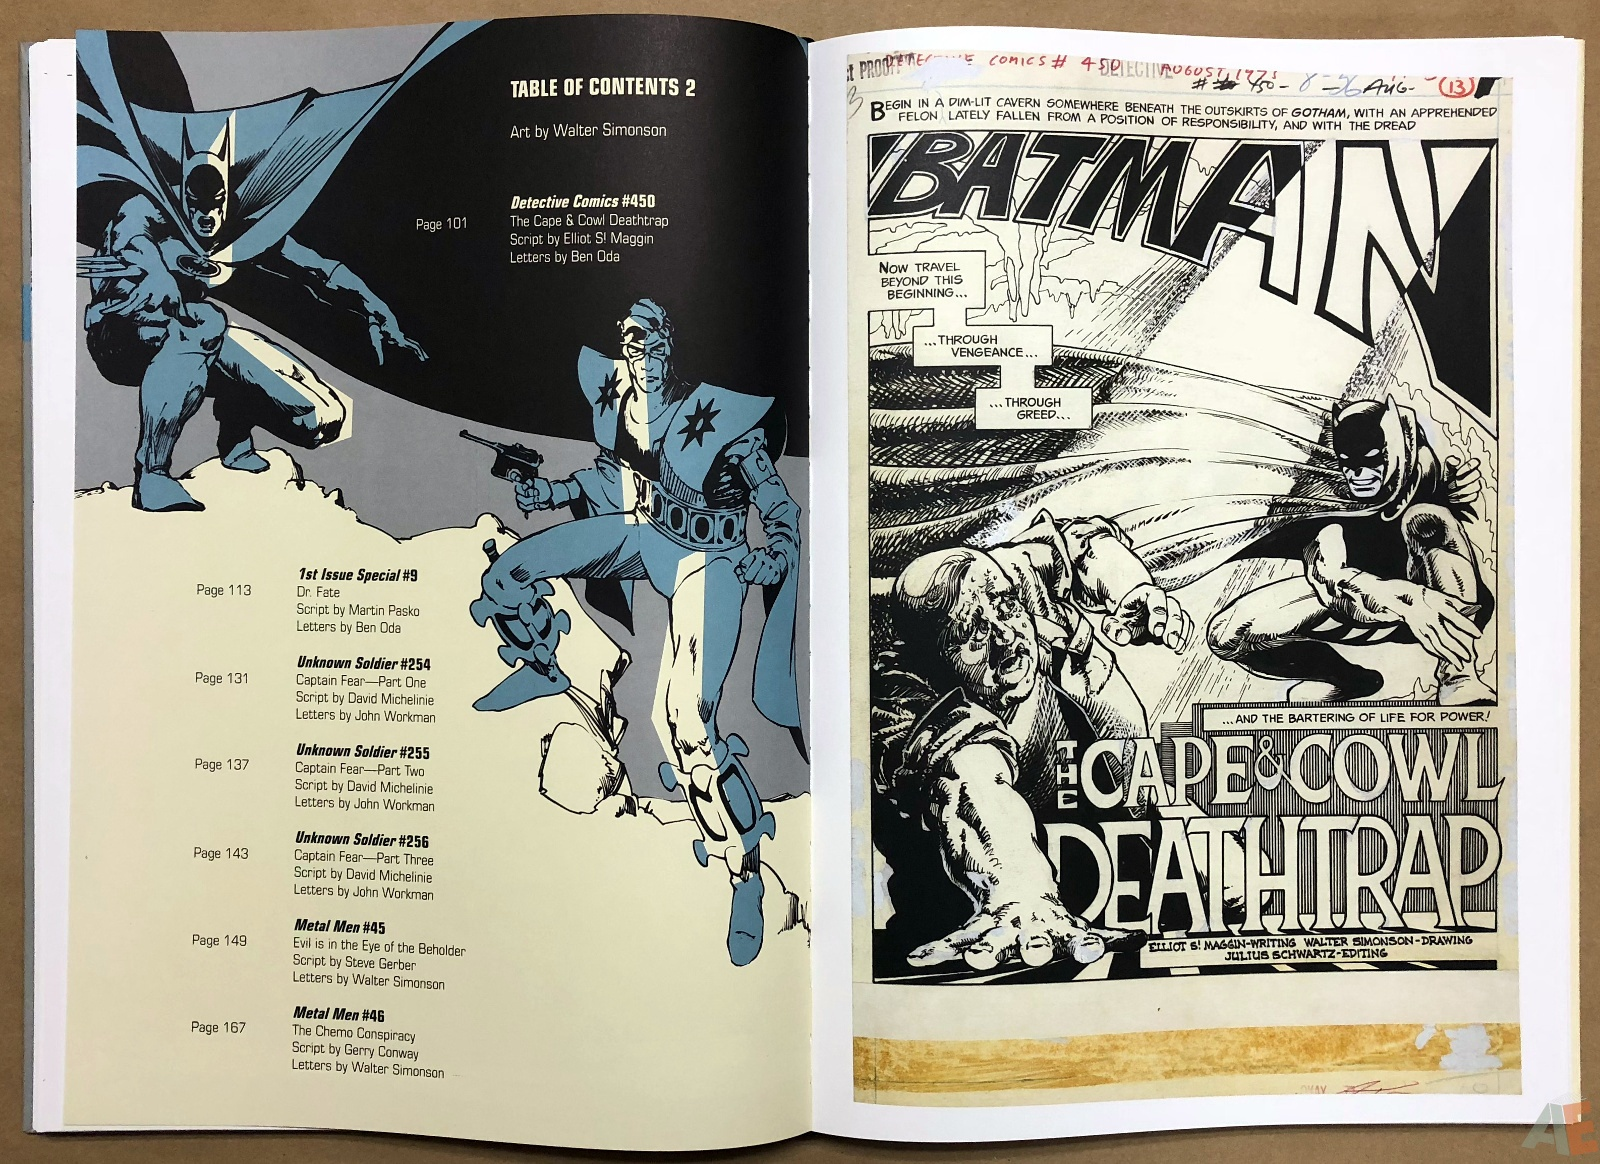 Walter Simonson Manhunter and Other Stories Artist's Edition 26